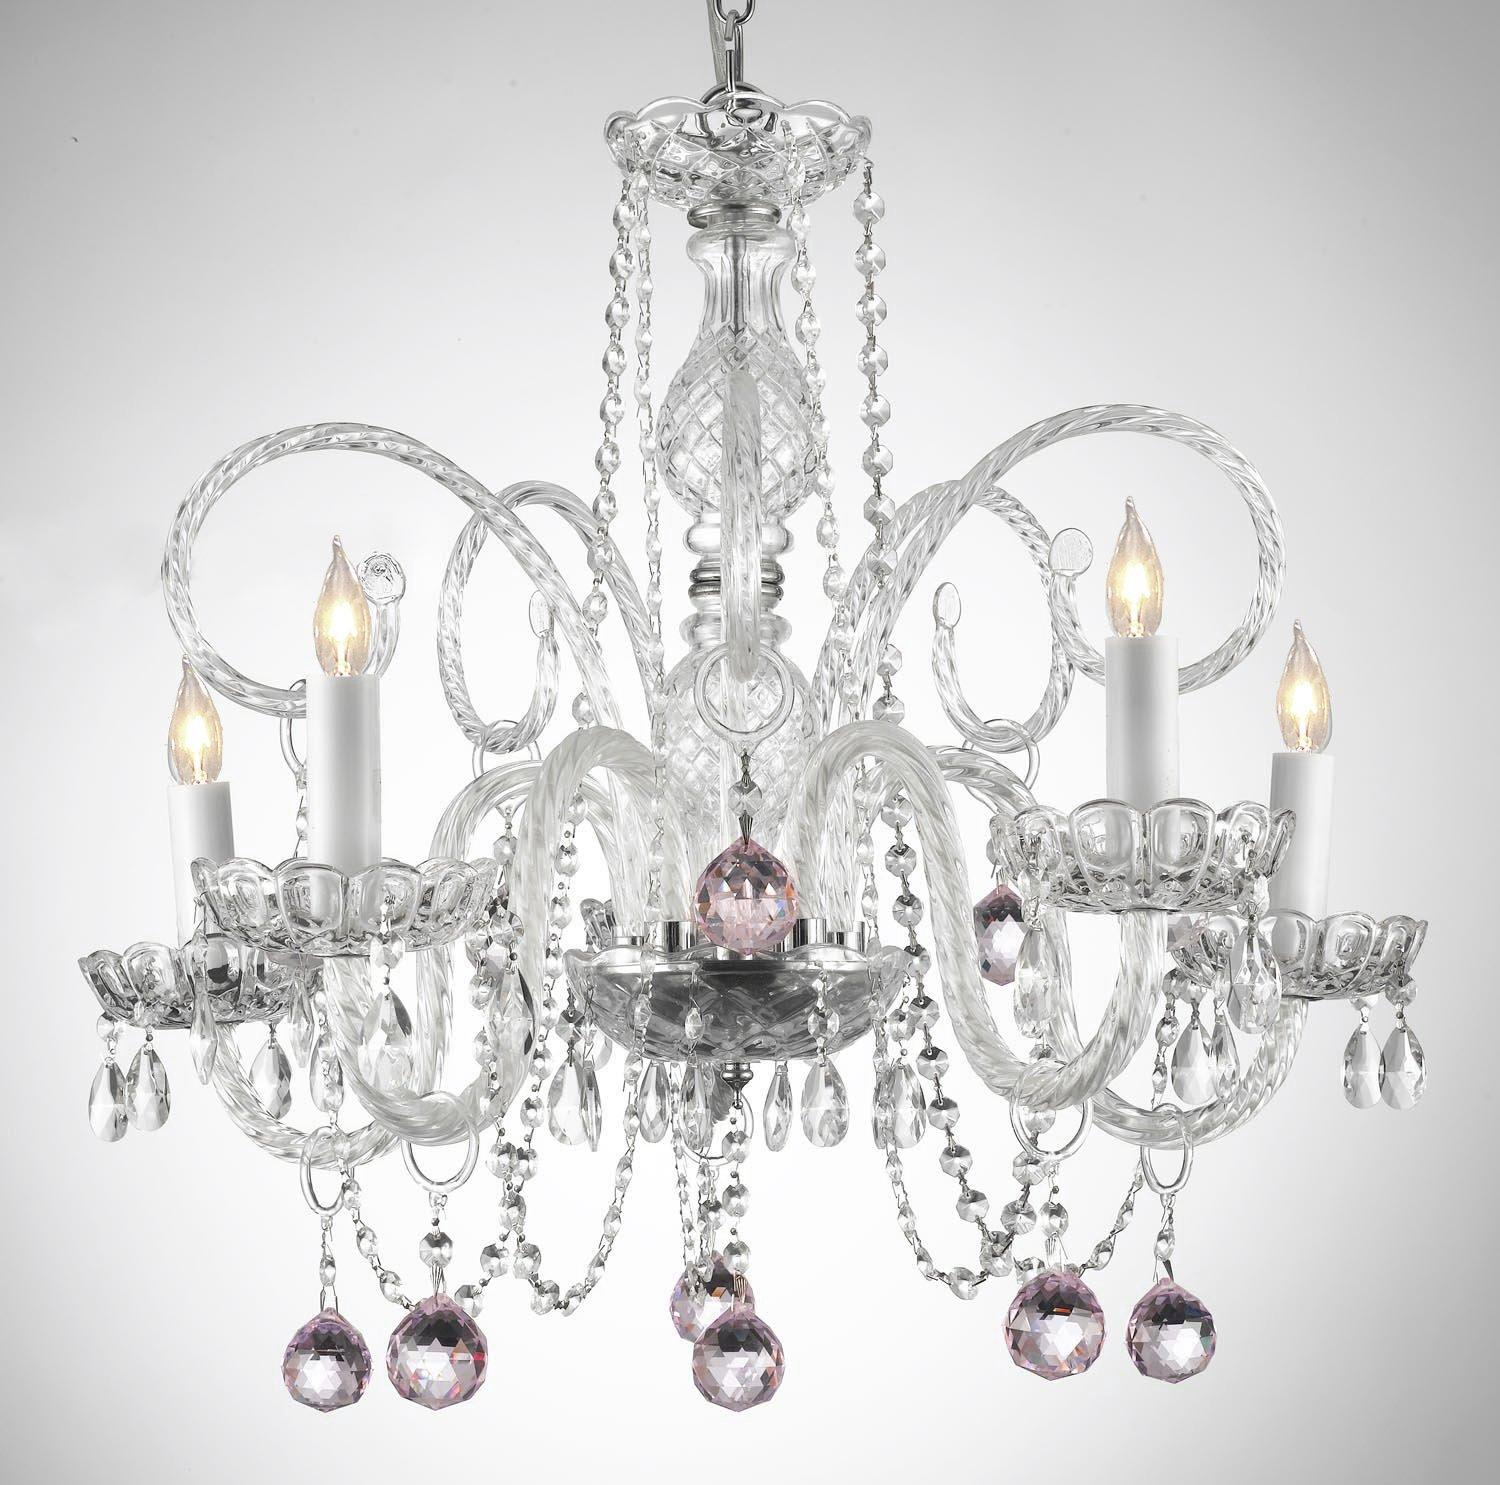 Crystal Chandelier Lighting With Pink Crystal Balls